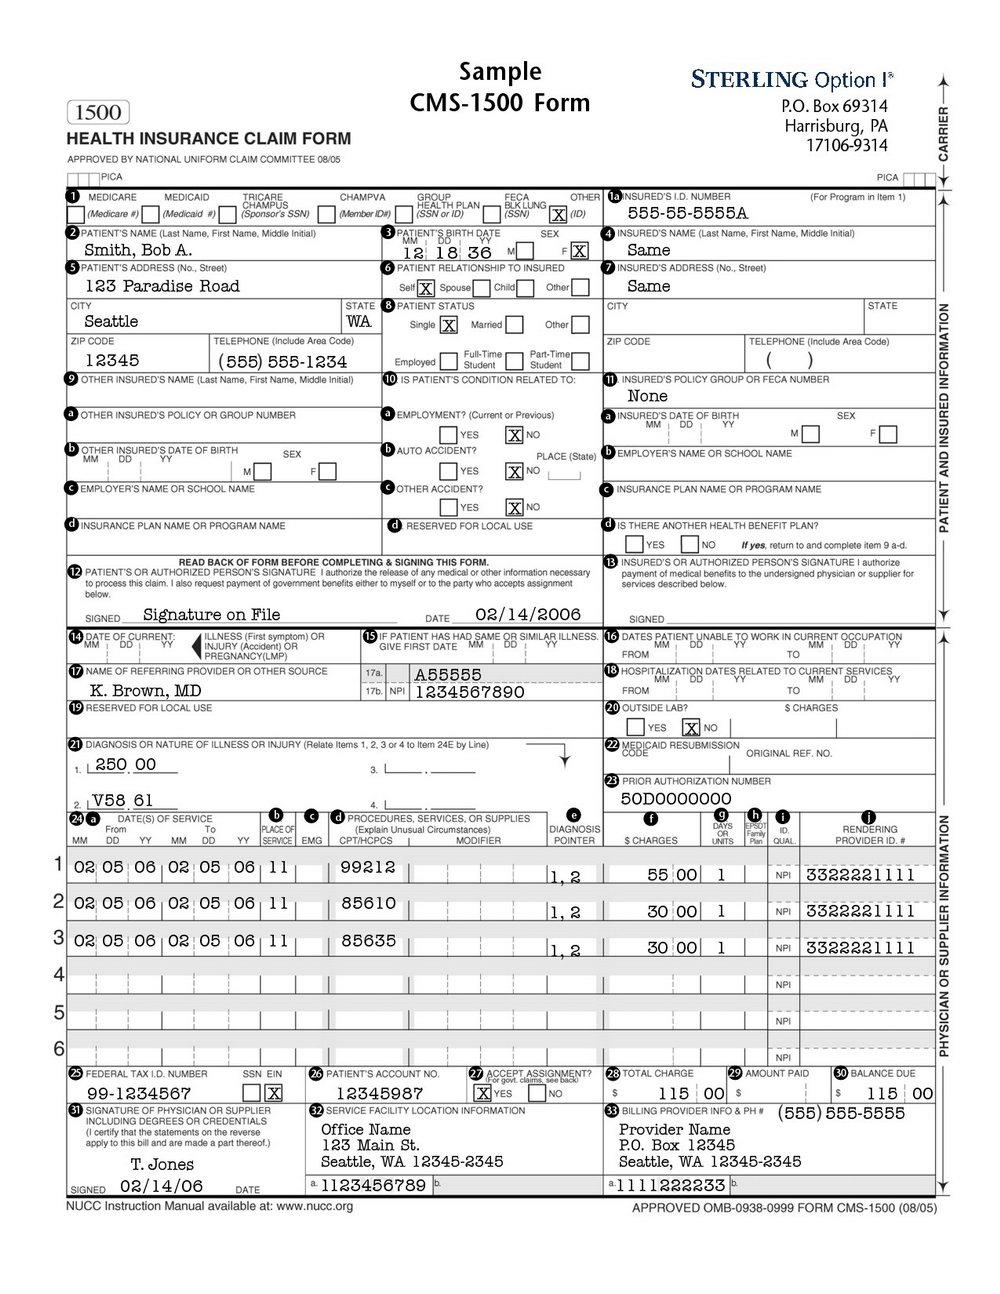 picture about Cms 1500 Form Printable known as Fresh Cms 1500 Variety - Sorts #MTA1NjU Resume Illustrations